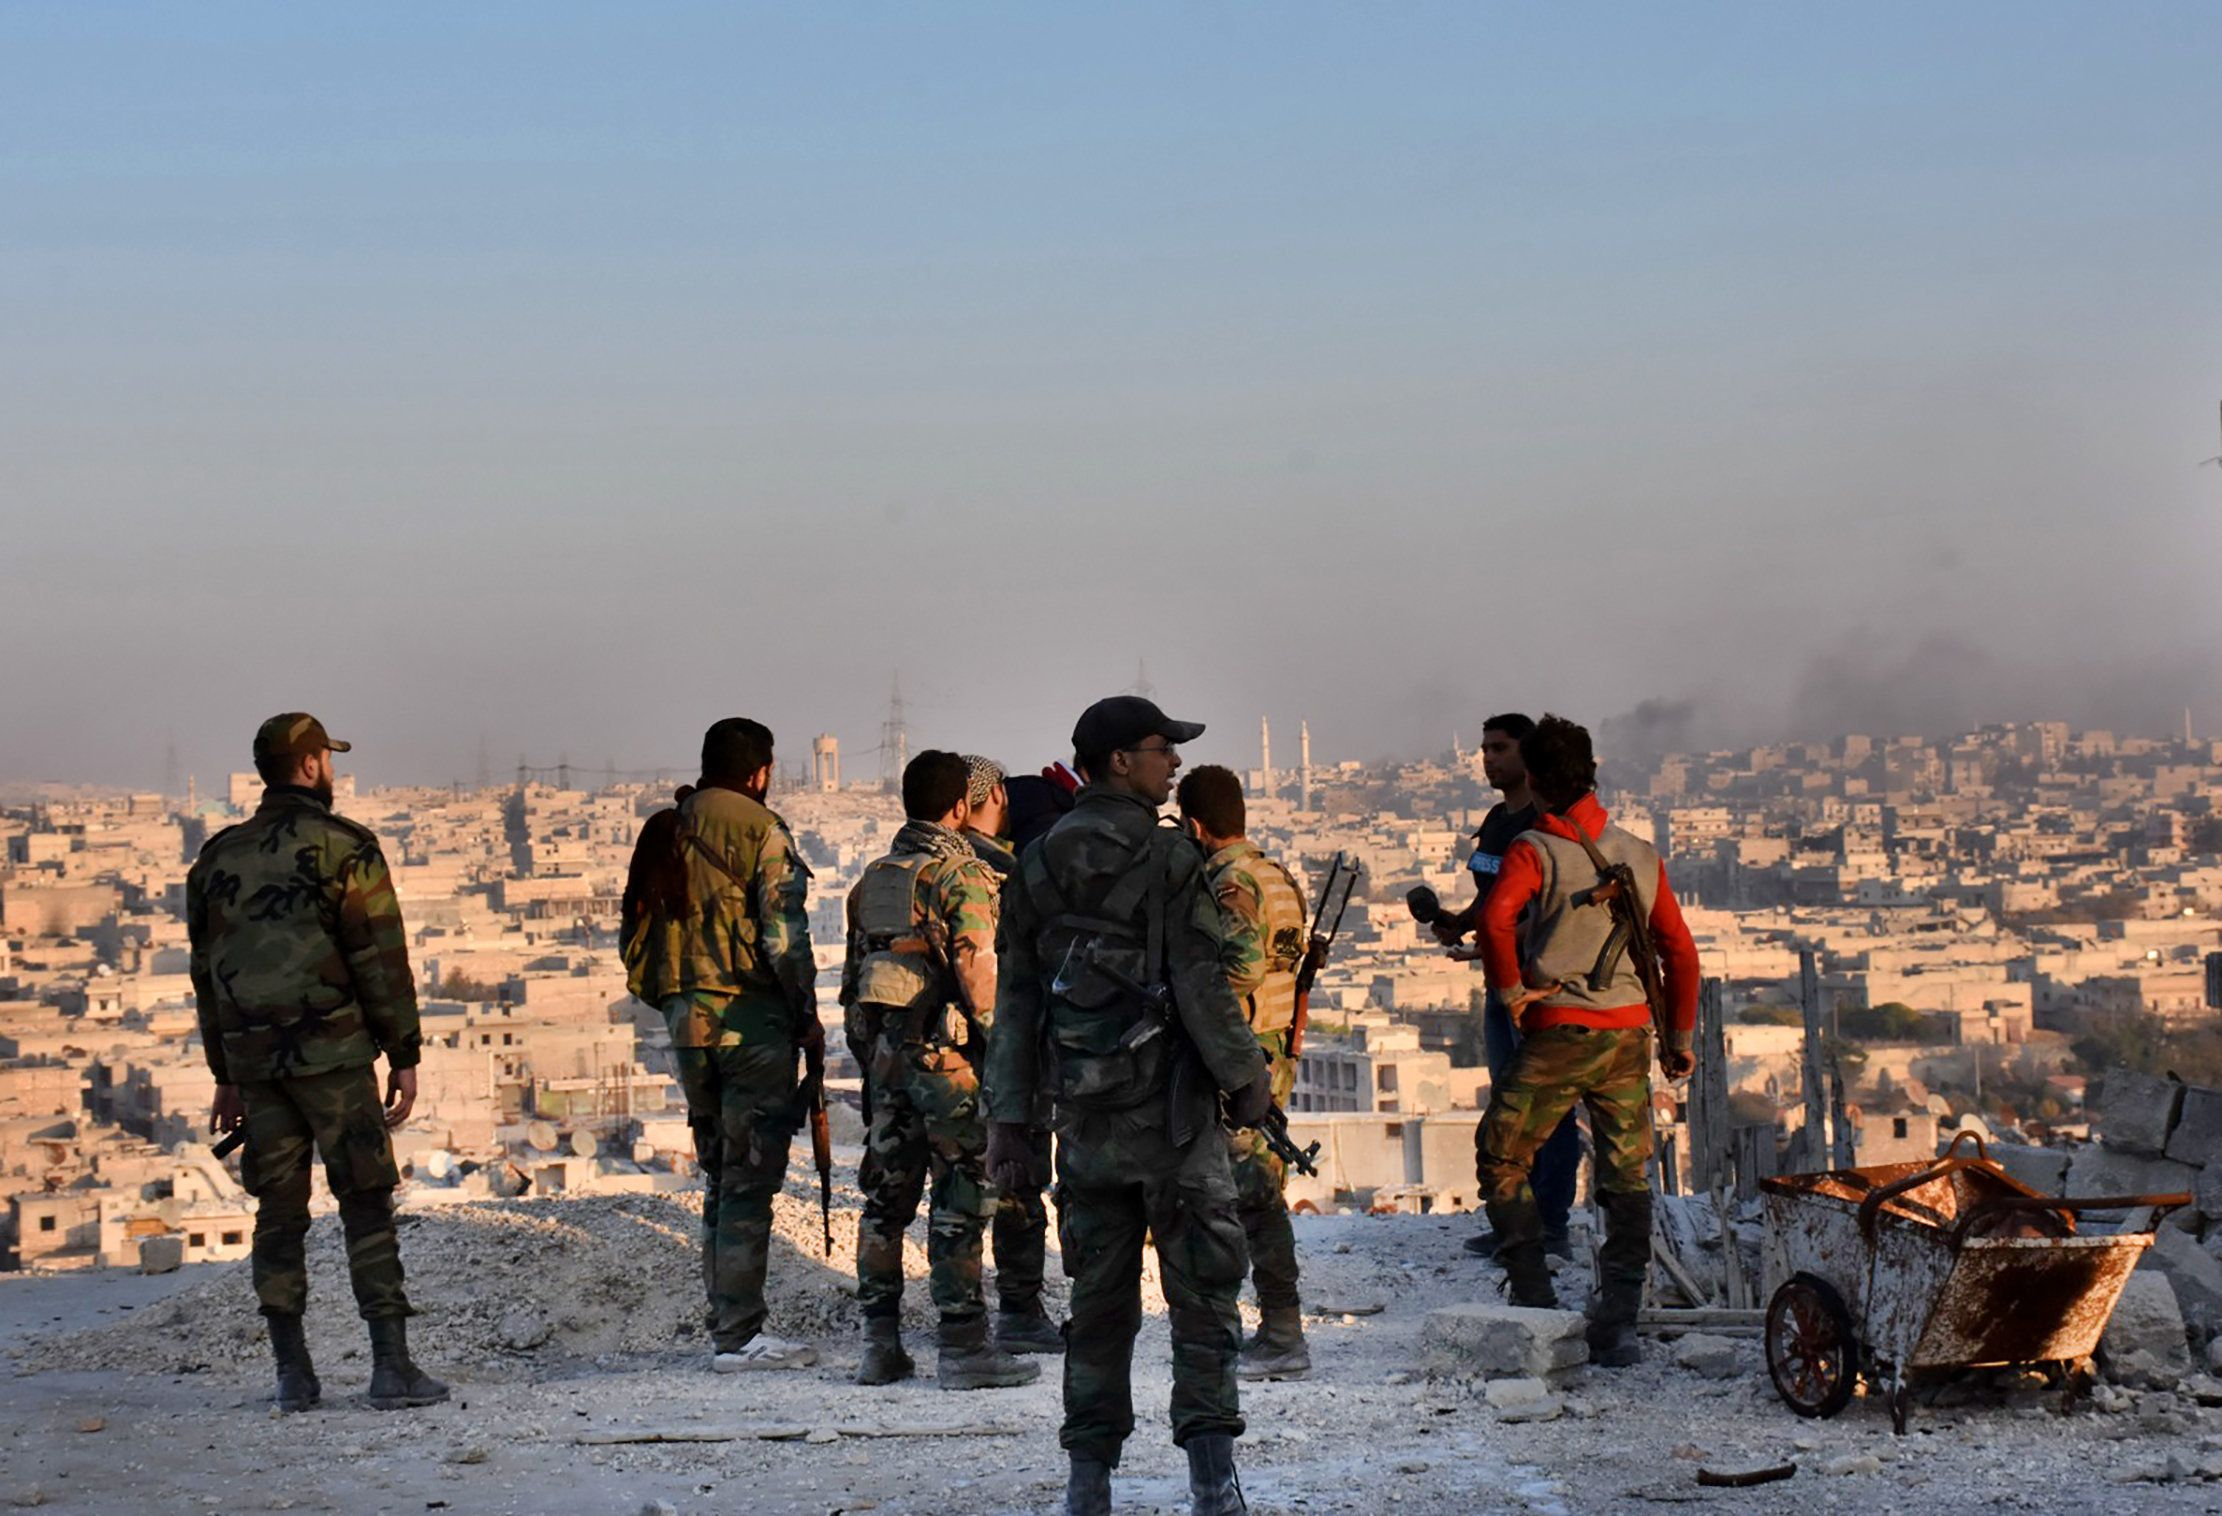 Syrian pro-government forces stand on top of a building overlooking Aleppo in the city's Bustan al-Basha neighbourhood on November 28, 2016, during their assault to retake the entire northern city from rebel fighters.   In a major breakthrough in the push to retake the whole city, regime forces captured six rebel-held districts of eastern Aleppo over the weekend, including Masaken Hanano, the biggest of those in eastern Aleppo.    / AFP / GEORGE OURFALIAN        (Photo credit should read GEORGE OURFALIAN/AFP/Getty Images)